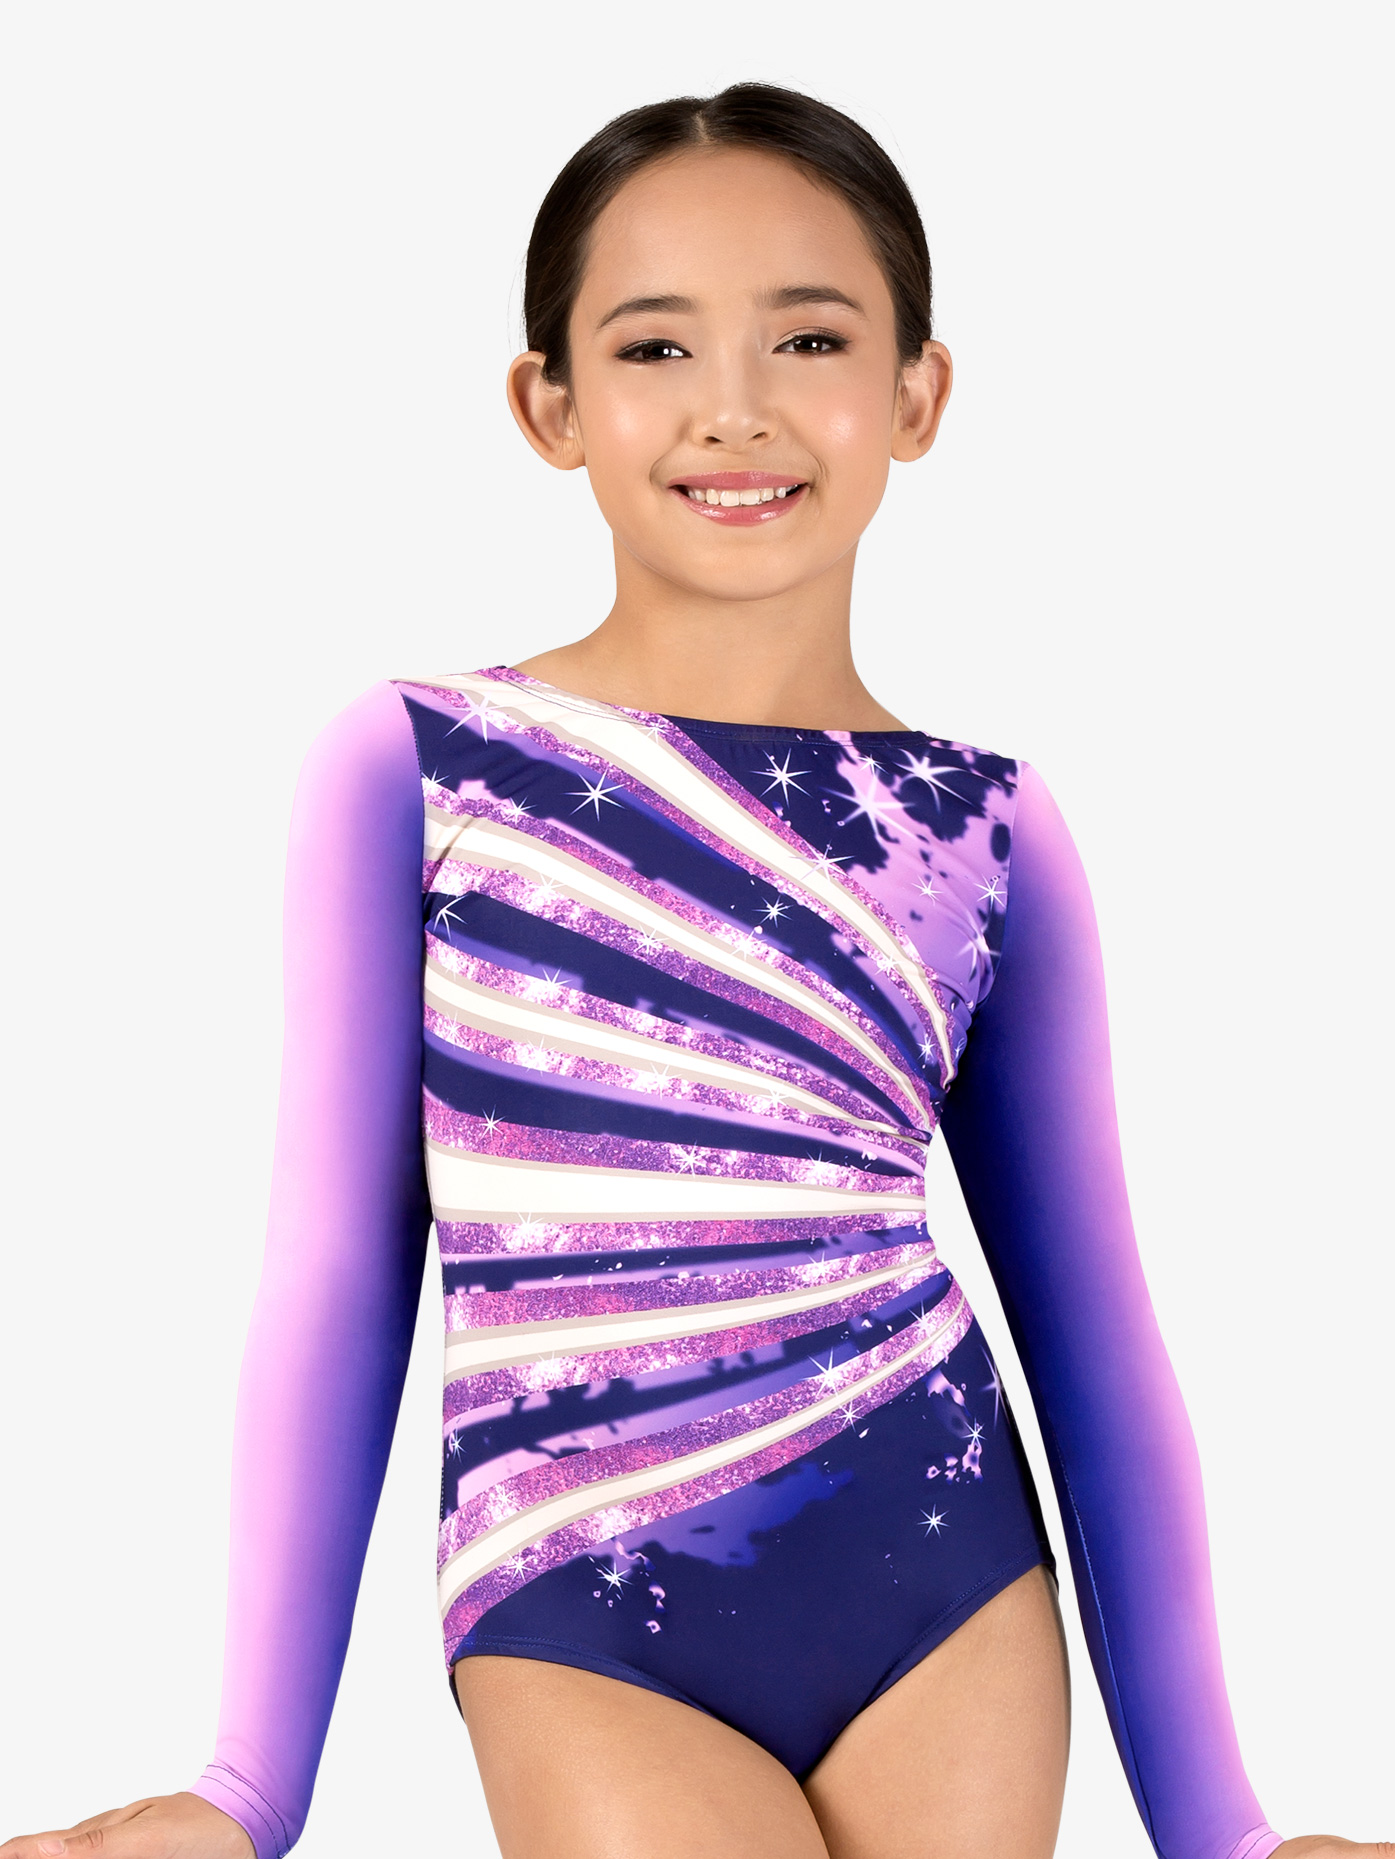 44bd3405bd40 store a7fd2 38e00 girls artistic gymnastics leotards gymnastics ...